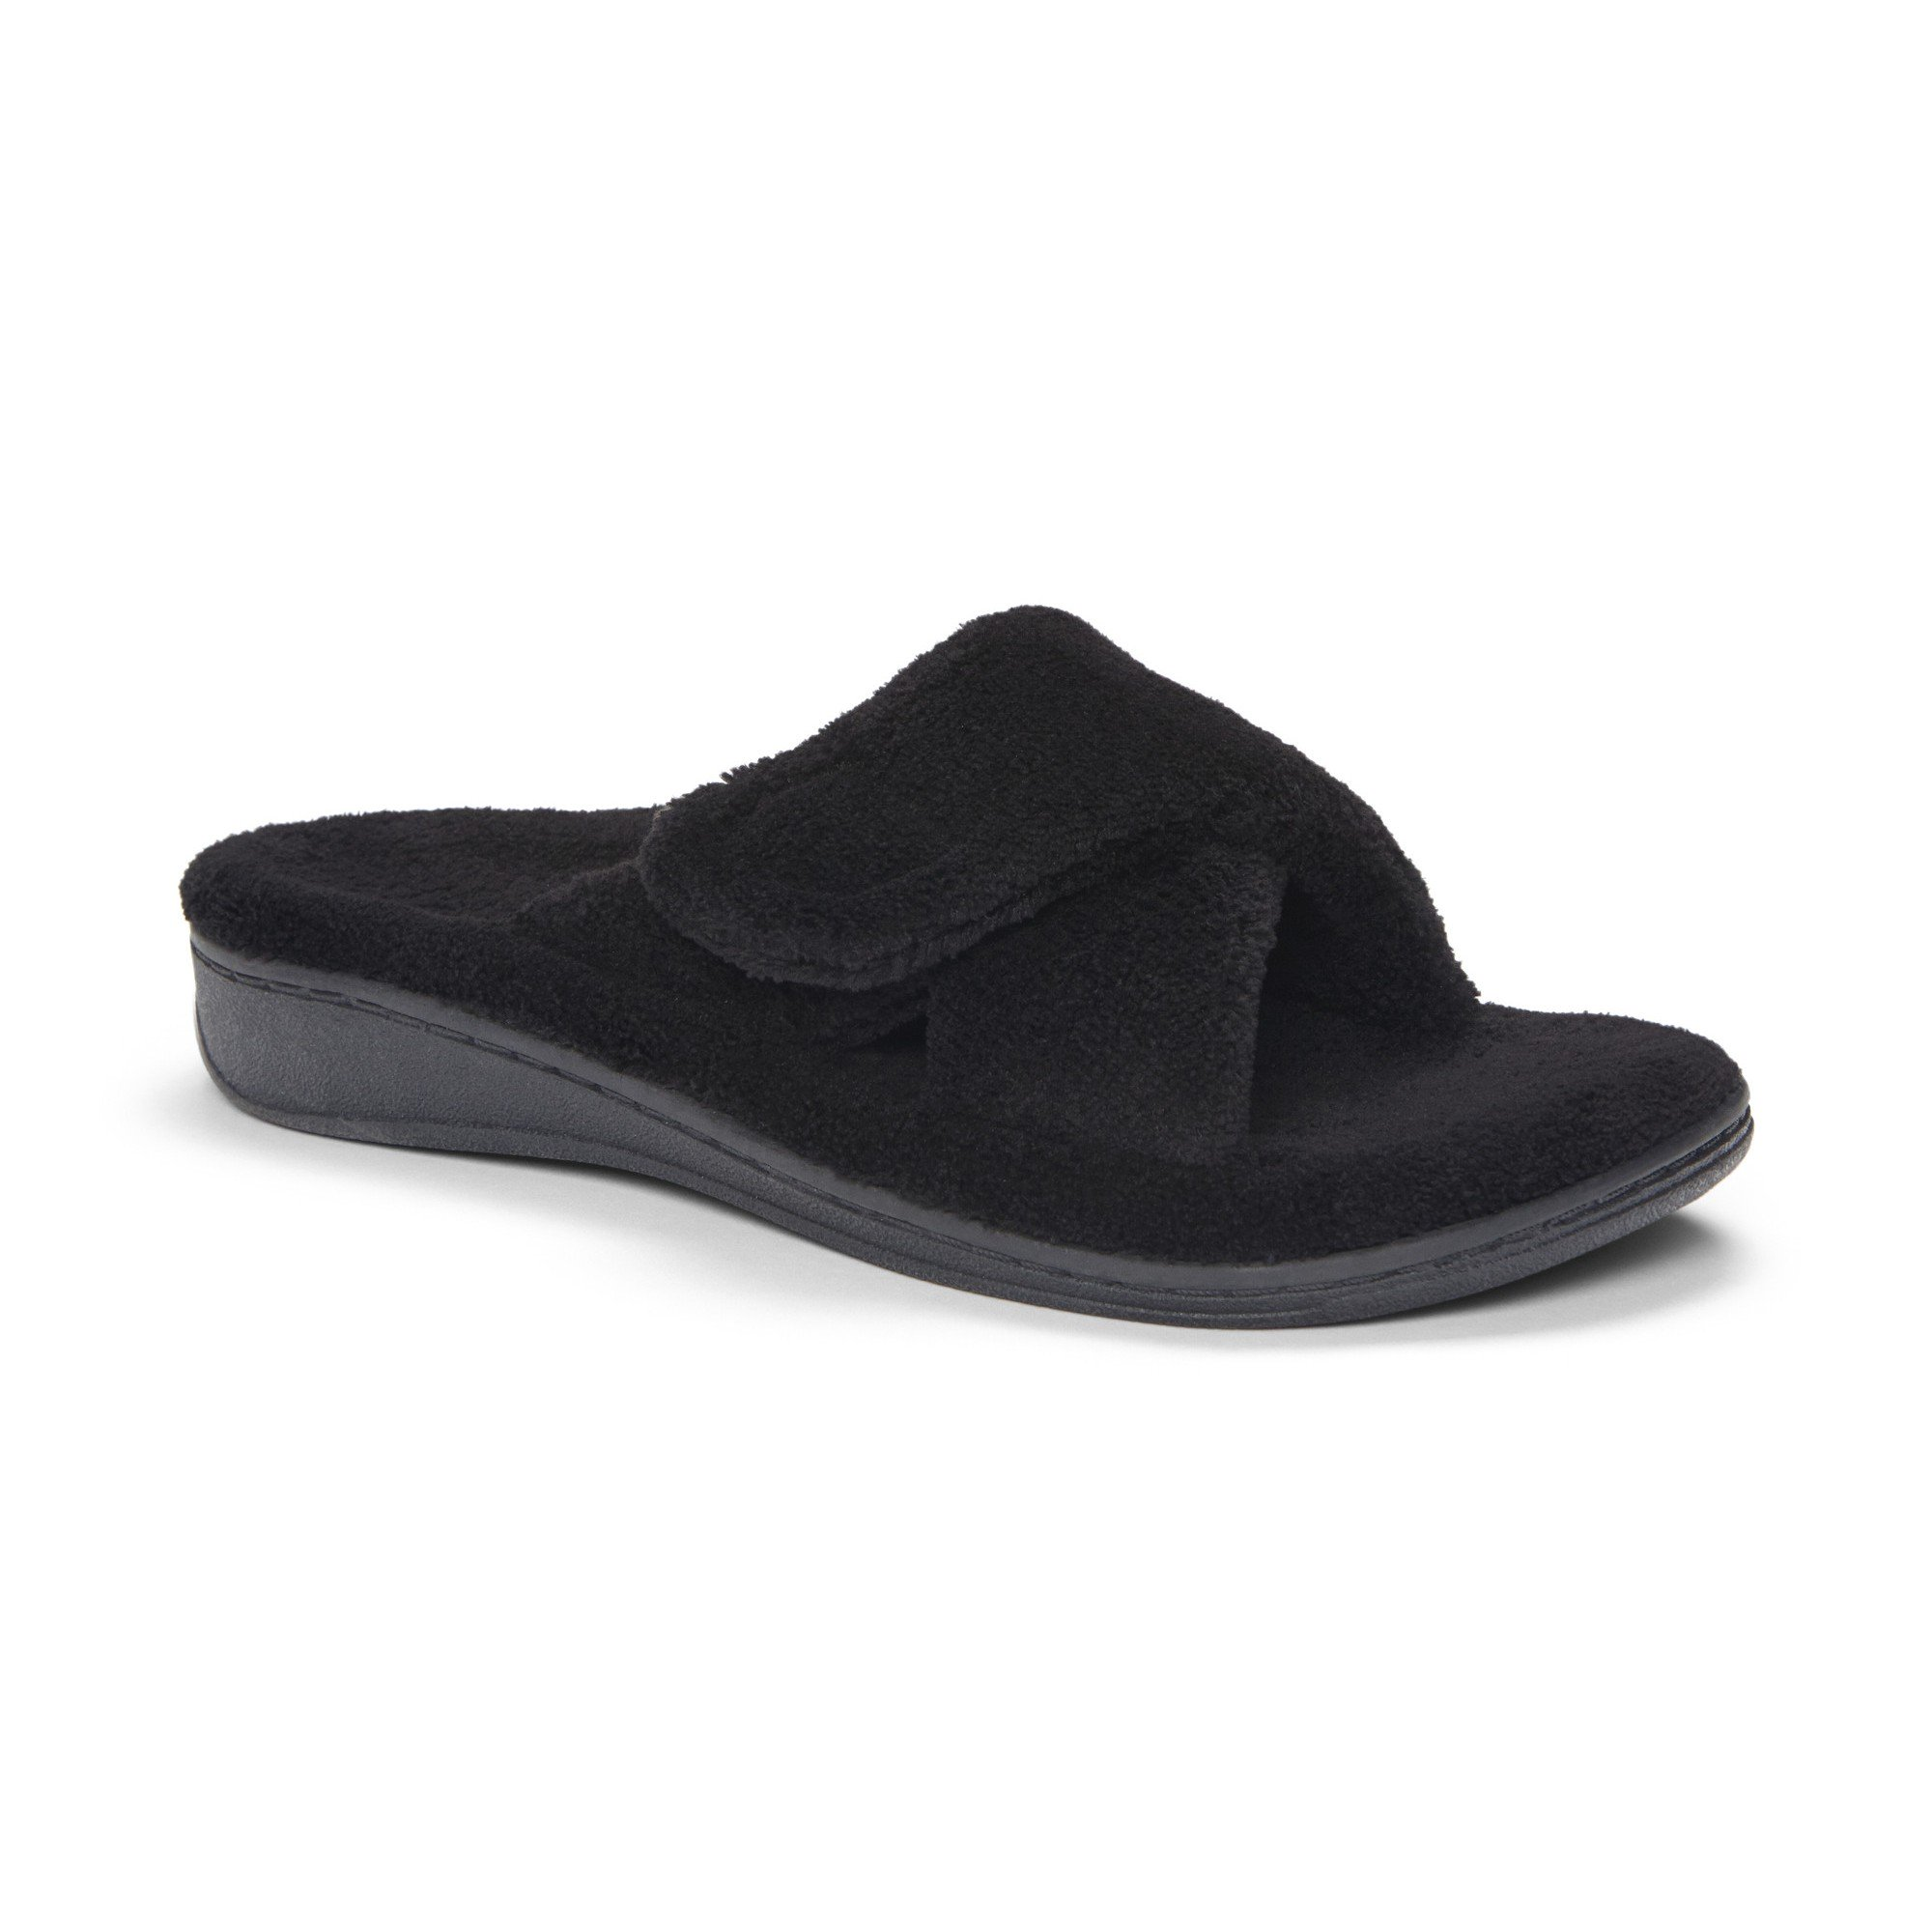 Vionic Relax Slippers - Women's